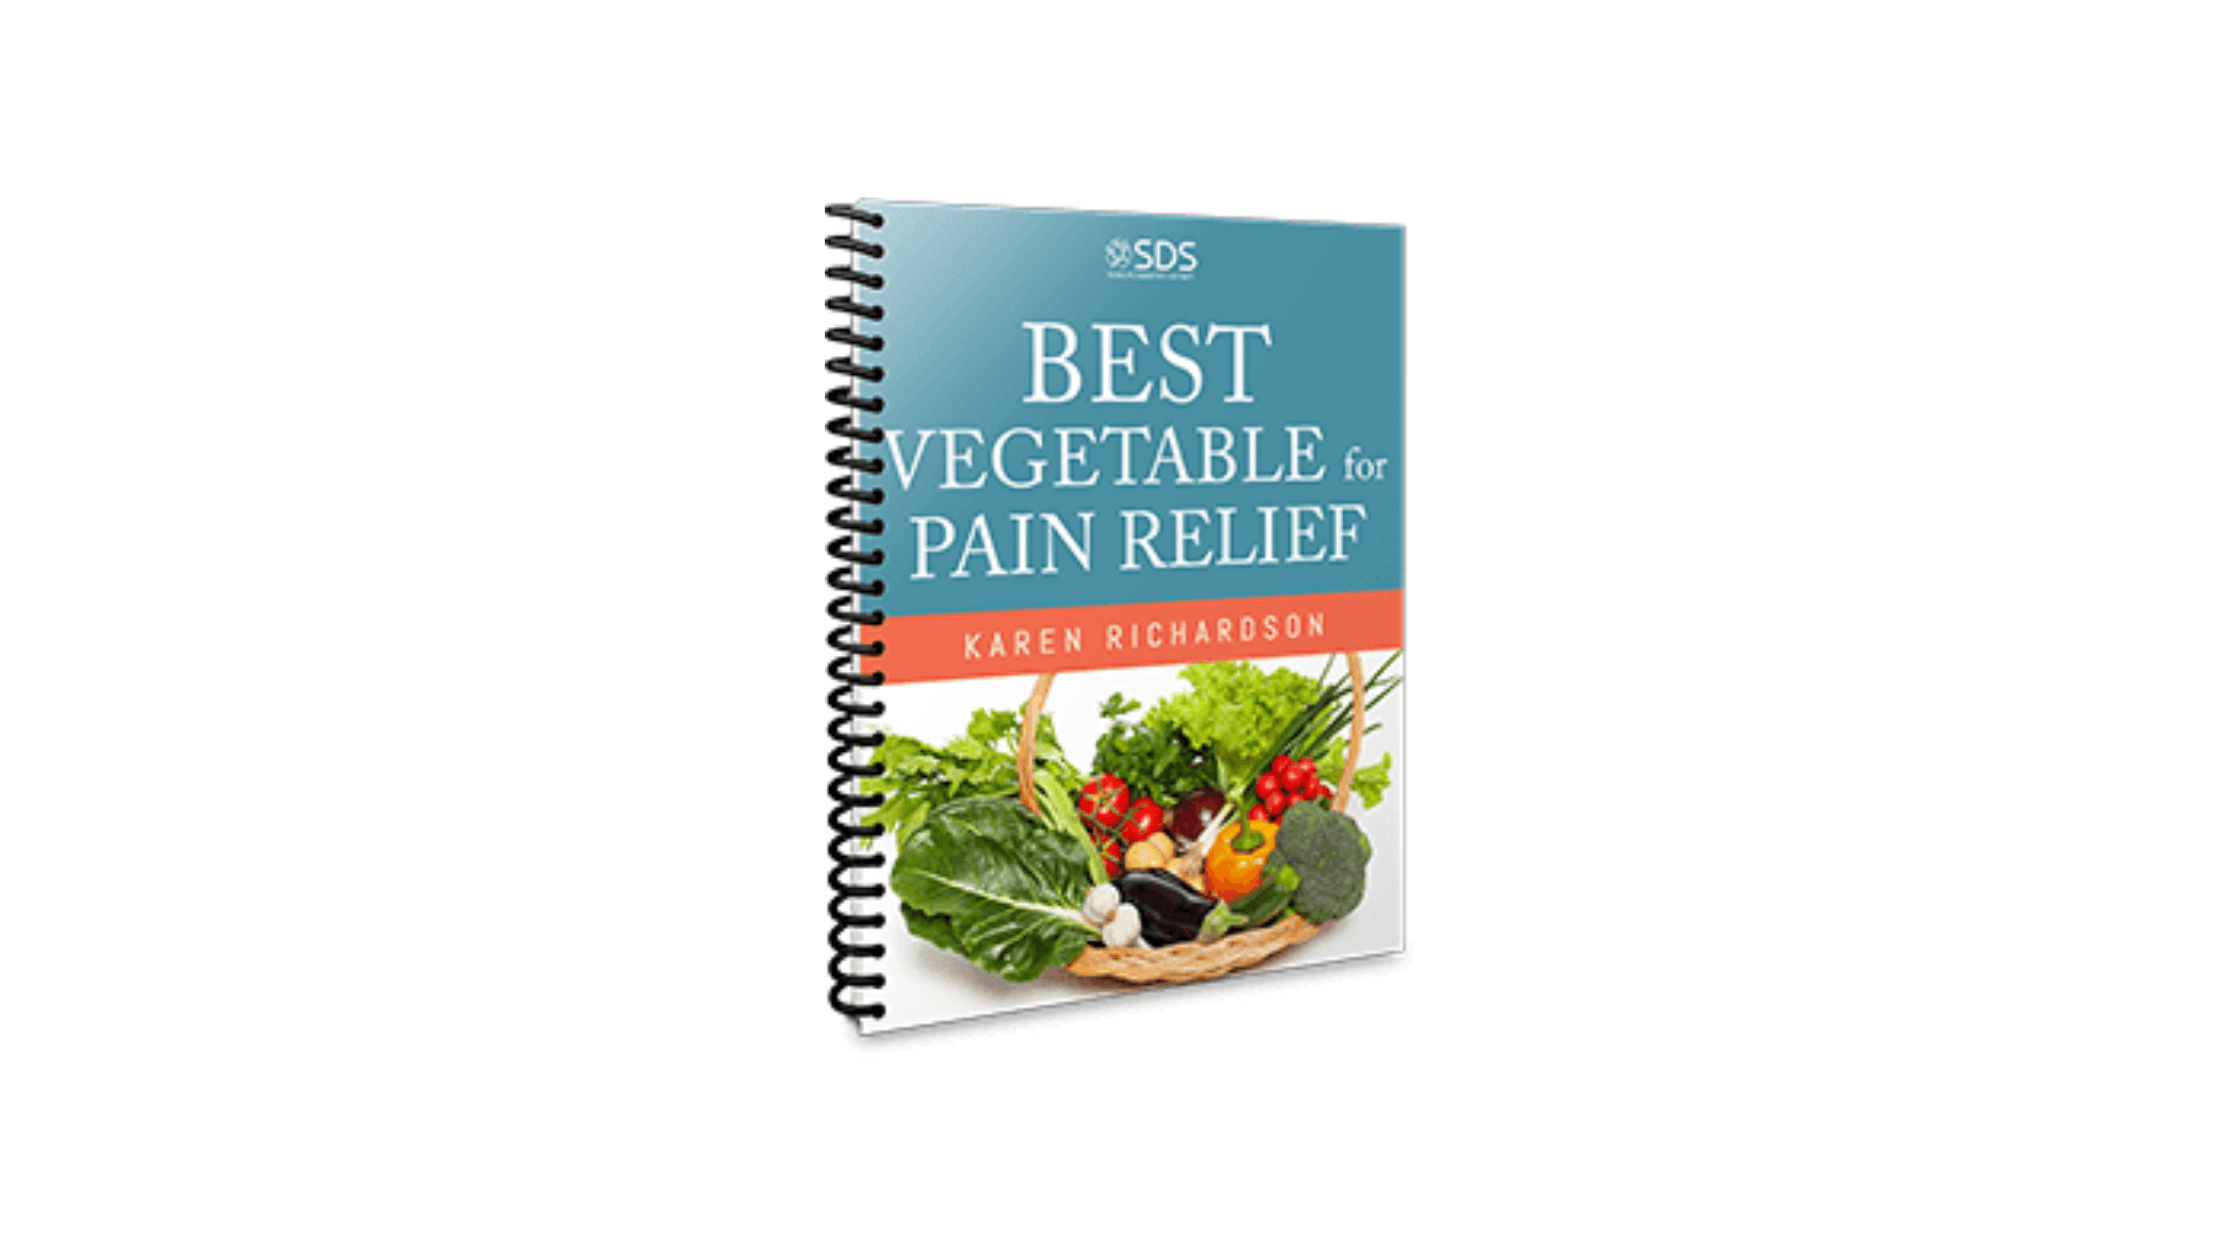 The Best Vegetable For Pain Relief